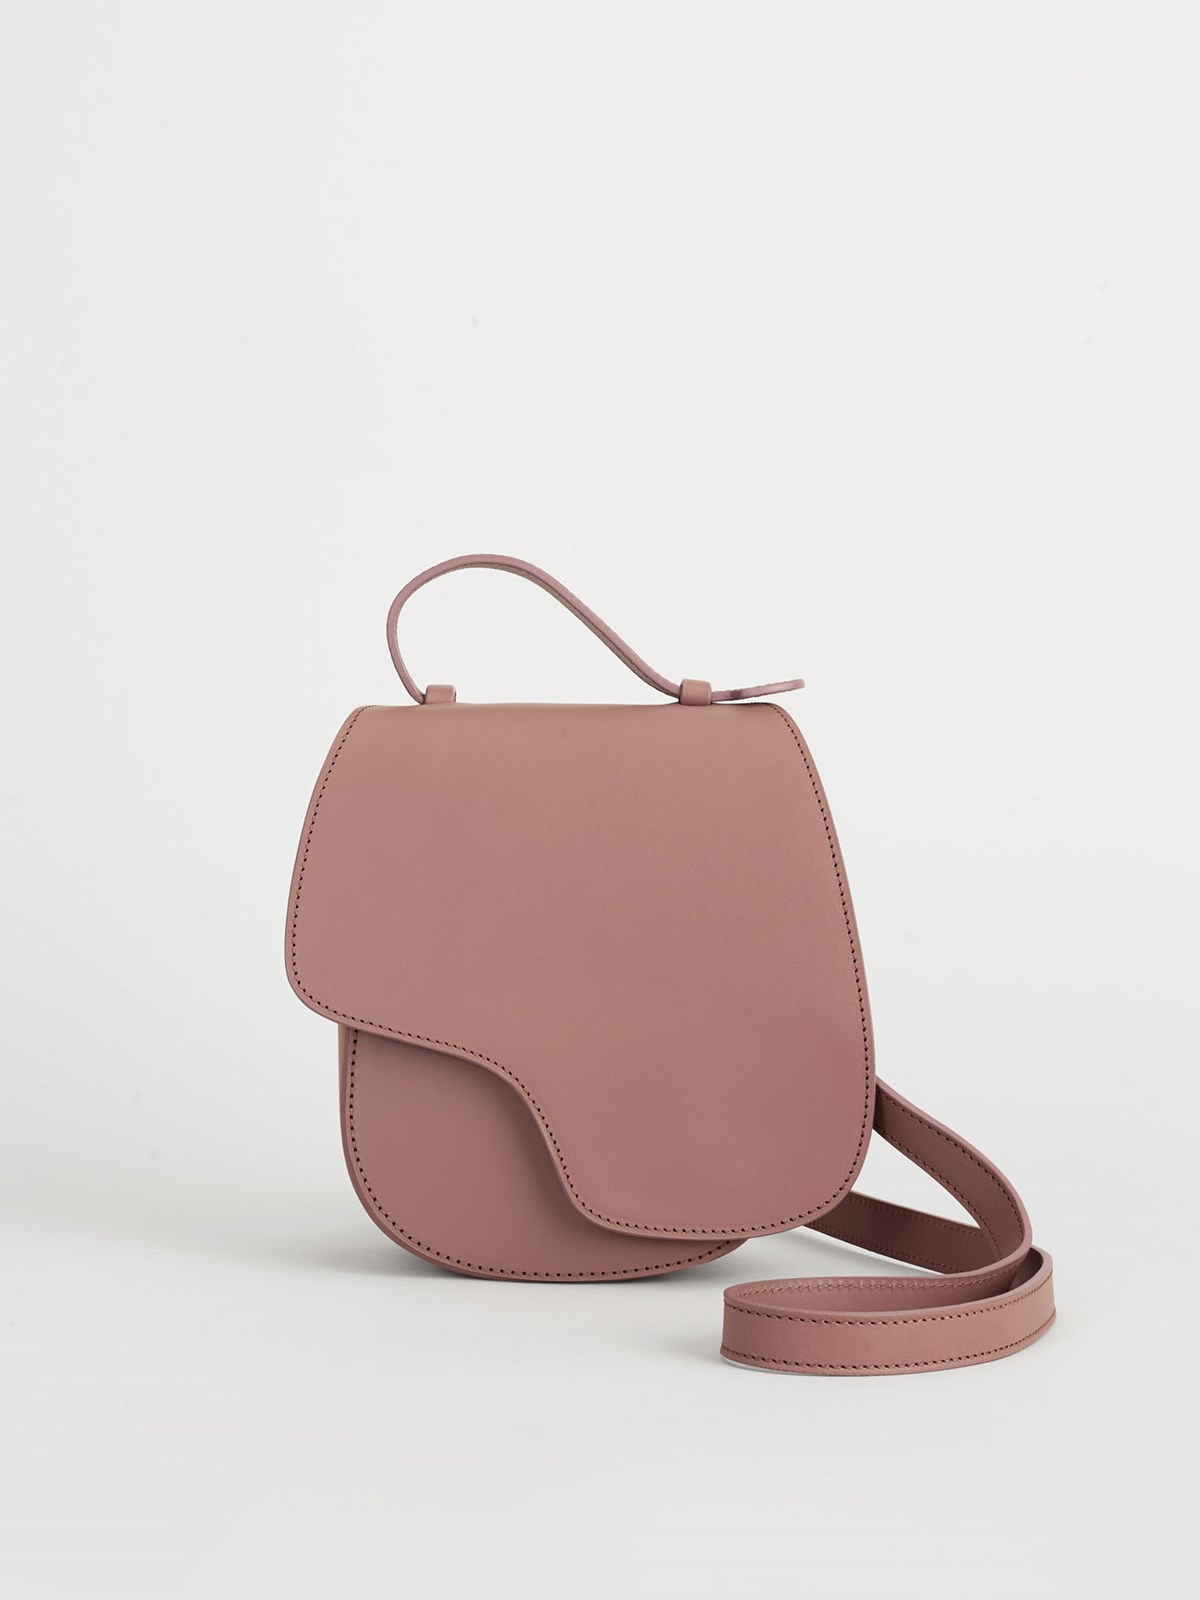 Carrara Khaki rose Crossbody bag